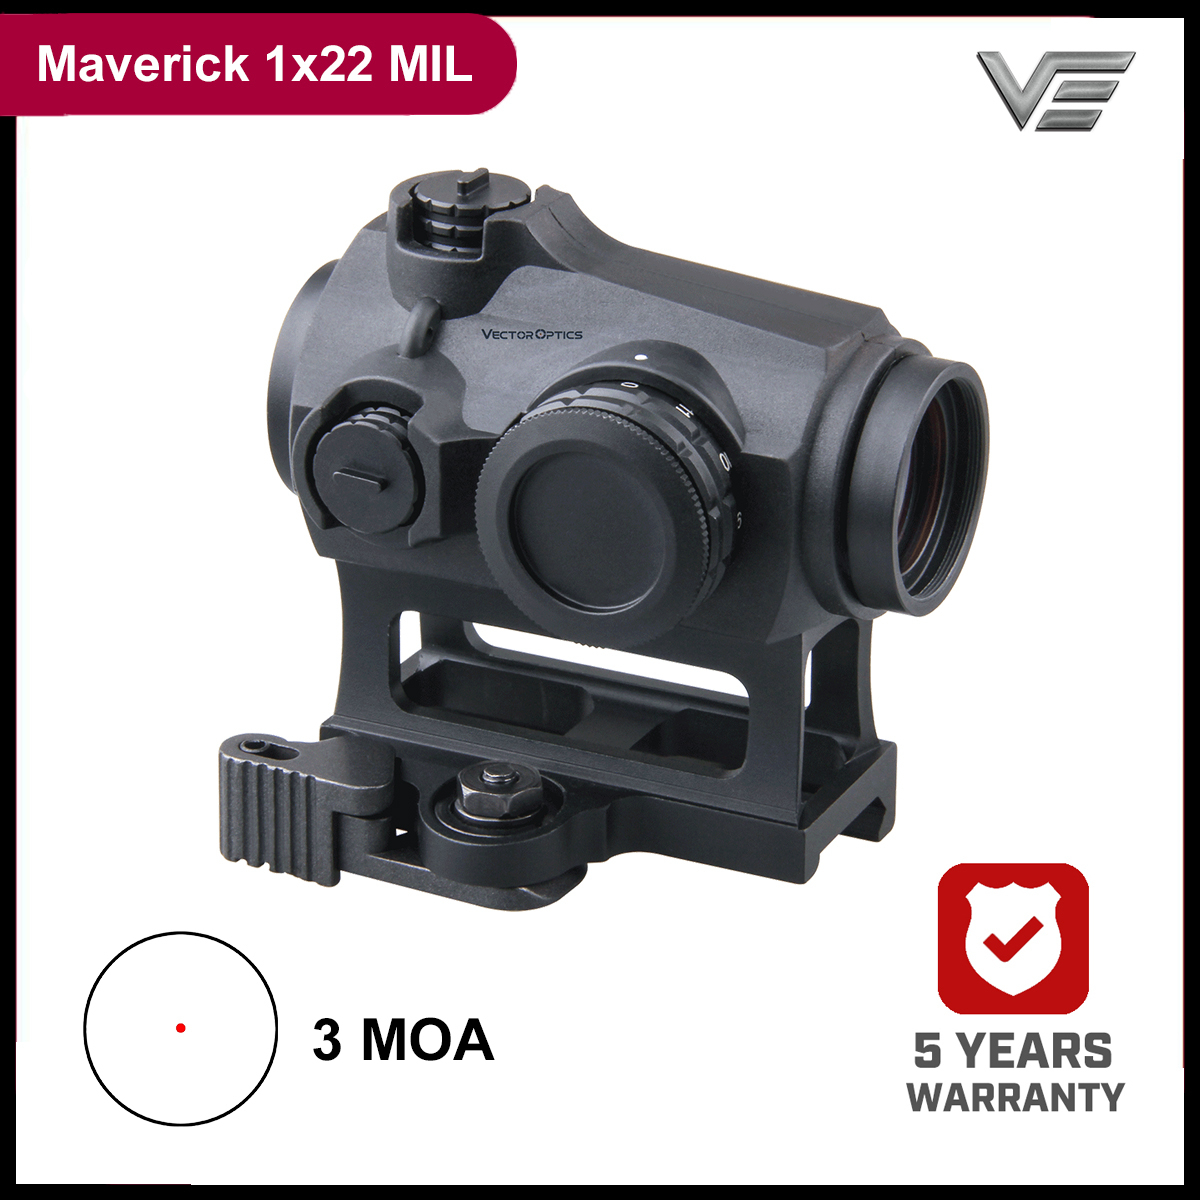 Vector Optics Maverick 1x22 MIL 3MOA Red Dot Sigh Hunting Scope Optic IPX6 Water Proof Rubber Armed For .308 7.62 .45 ACP